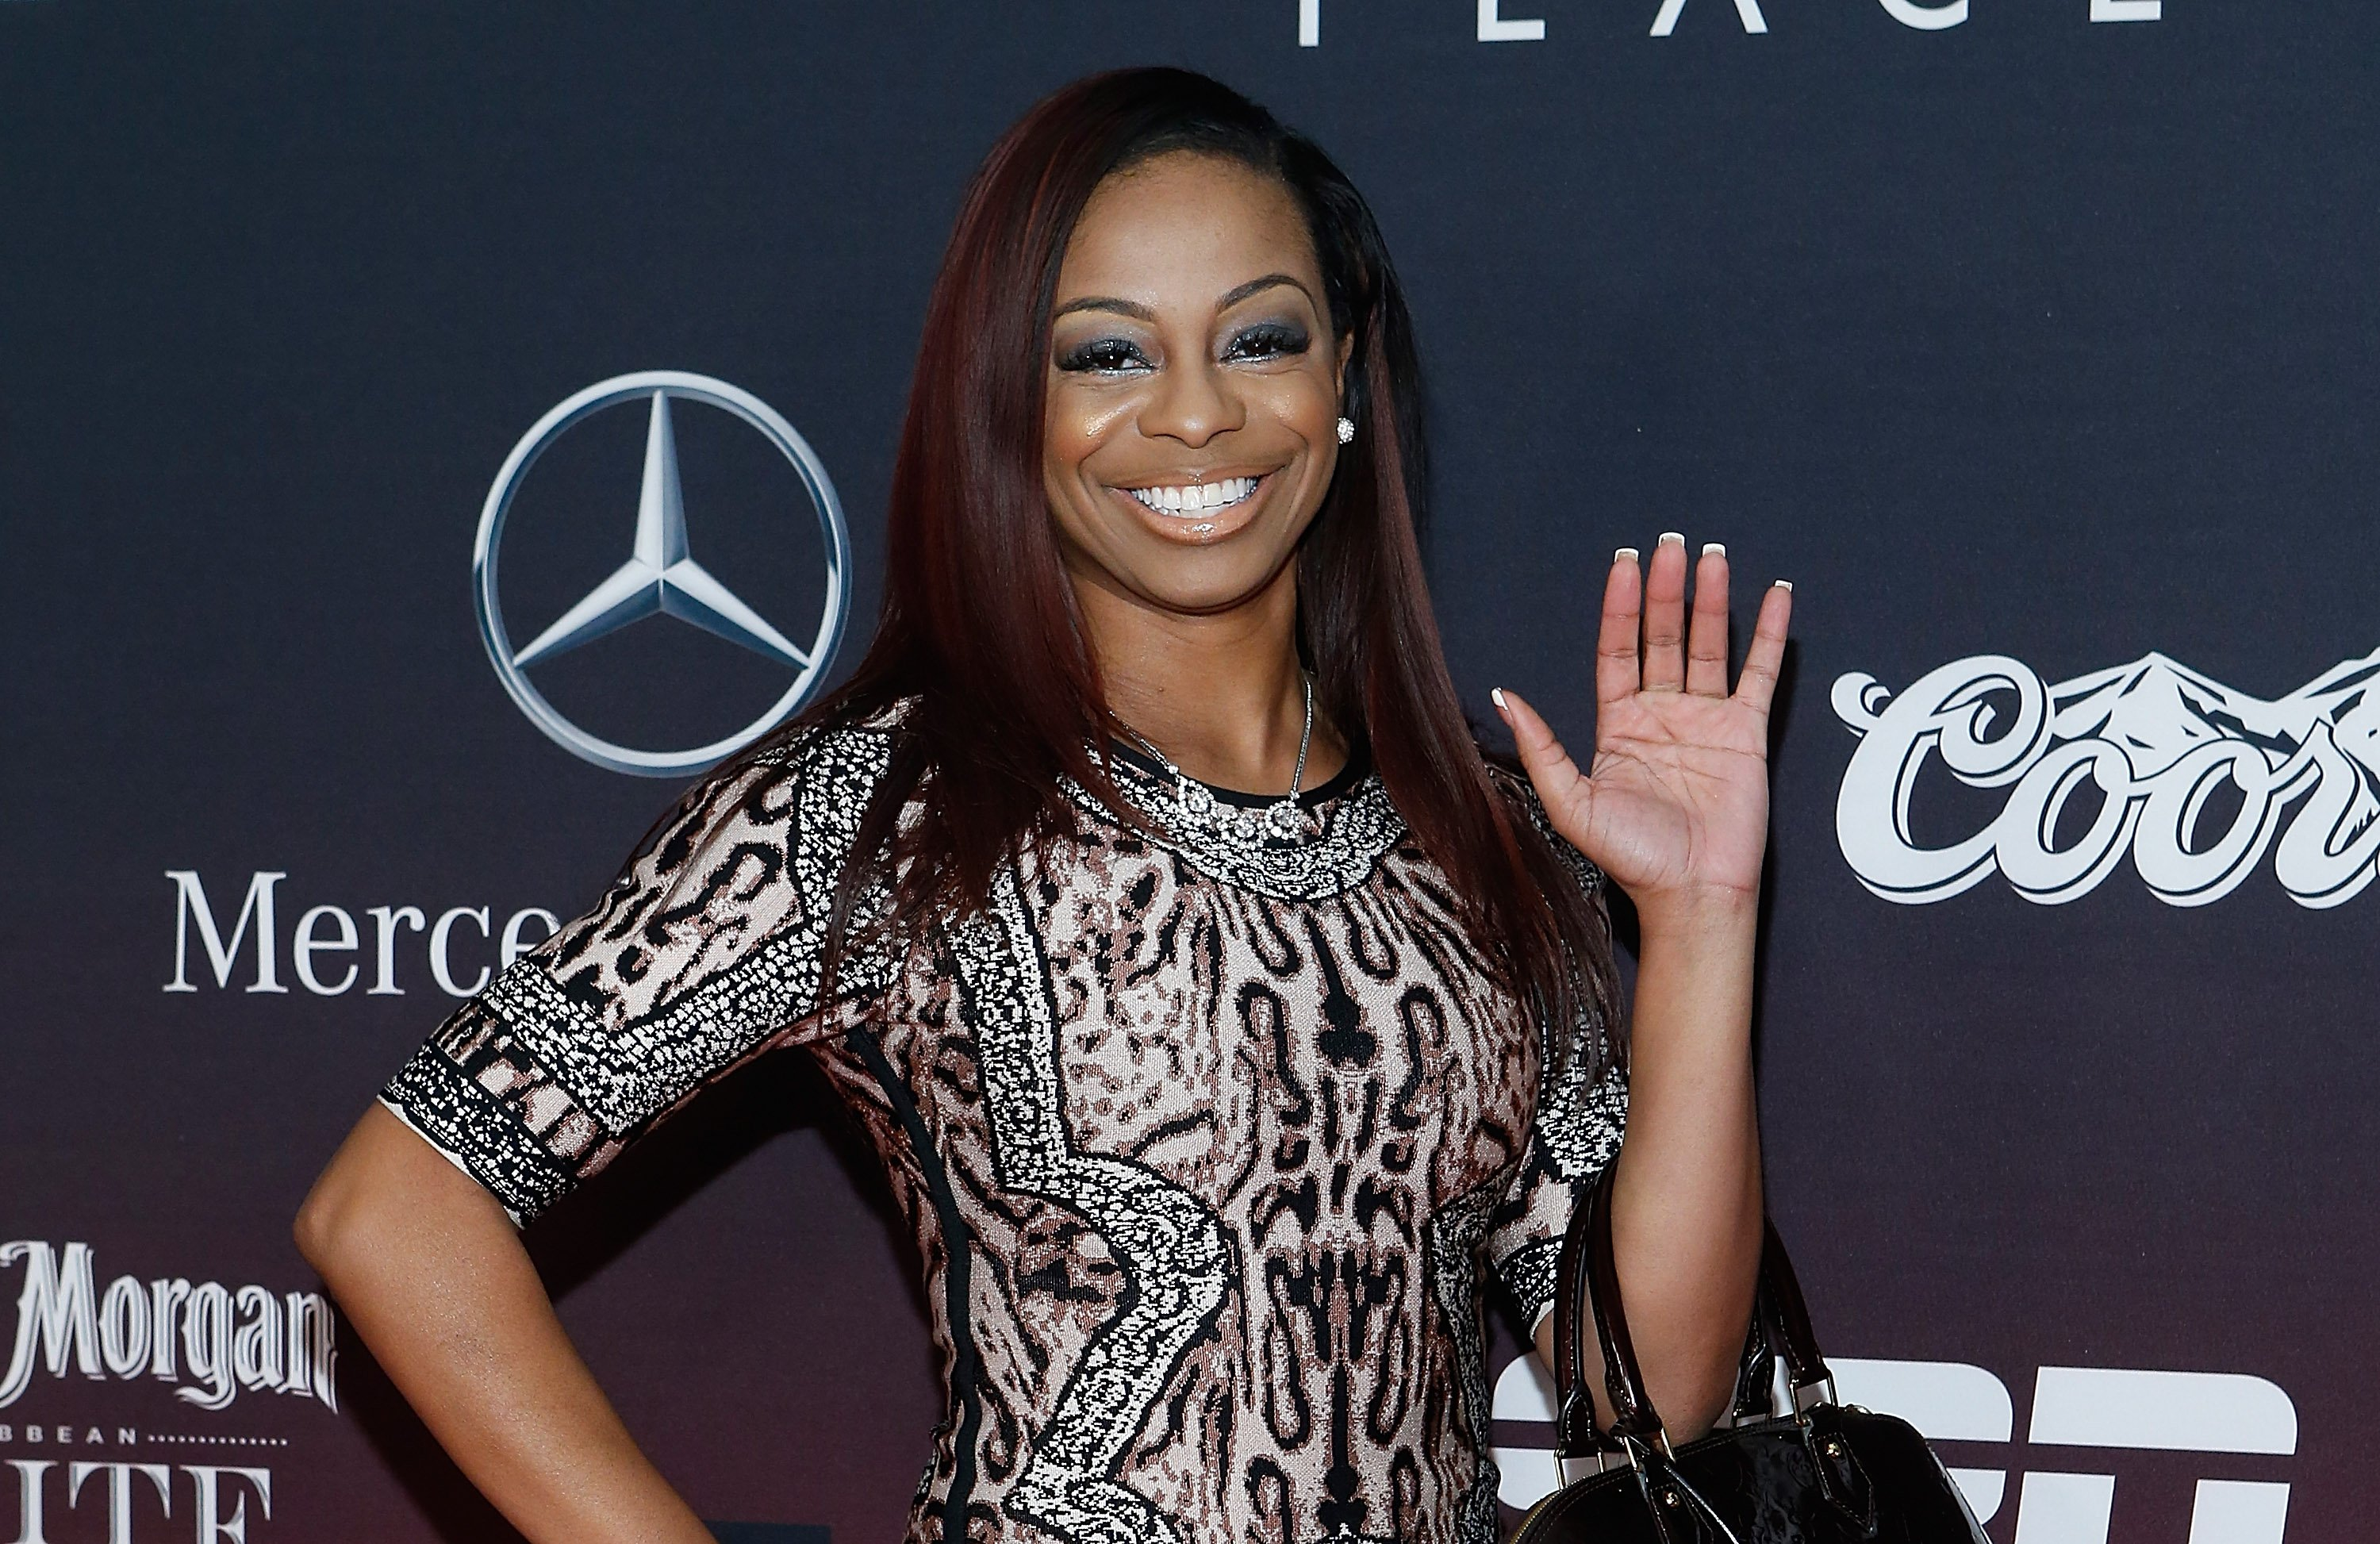 Josina anderson from ESPN attends 2014 ESPN The Party at Pier 36 on January 31, 2014 in New York City.  | Photo: GettyImages